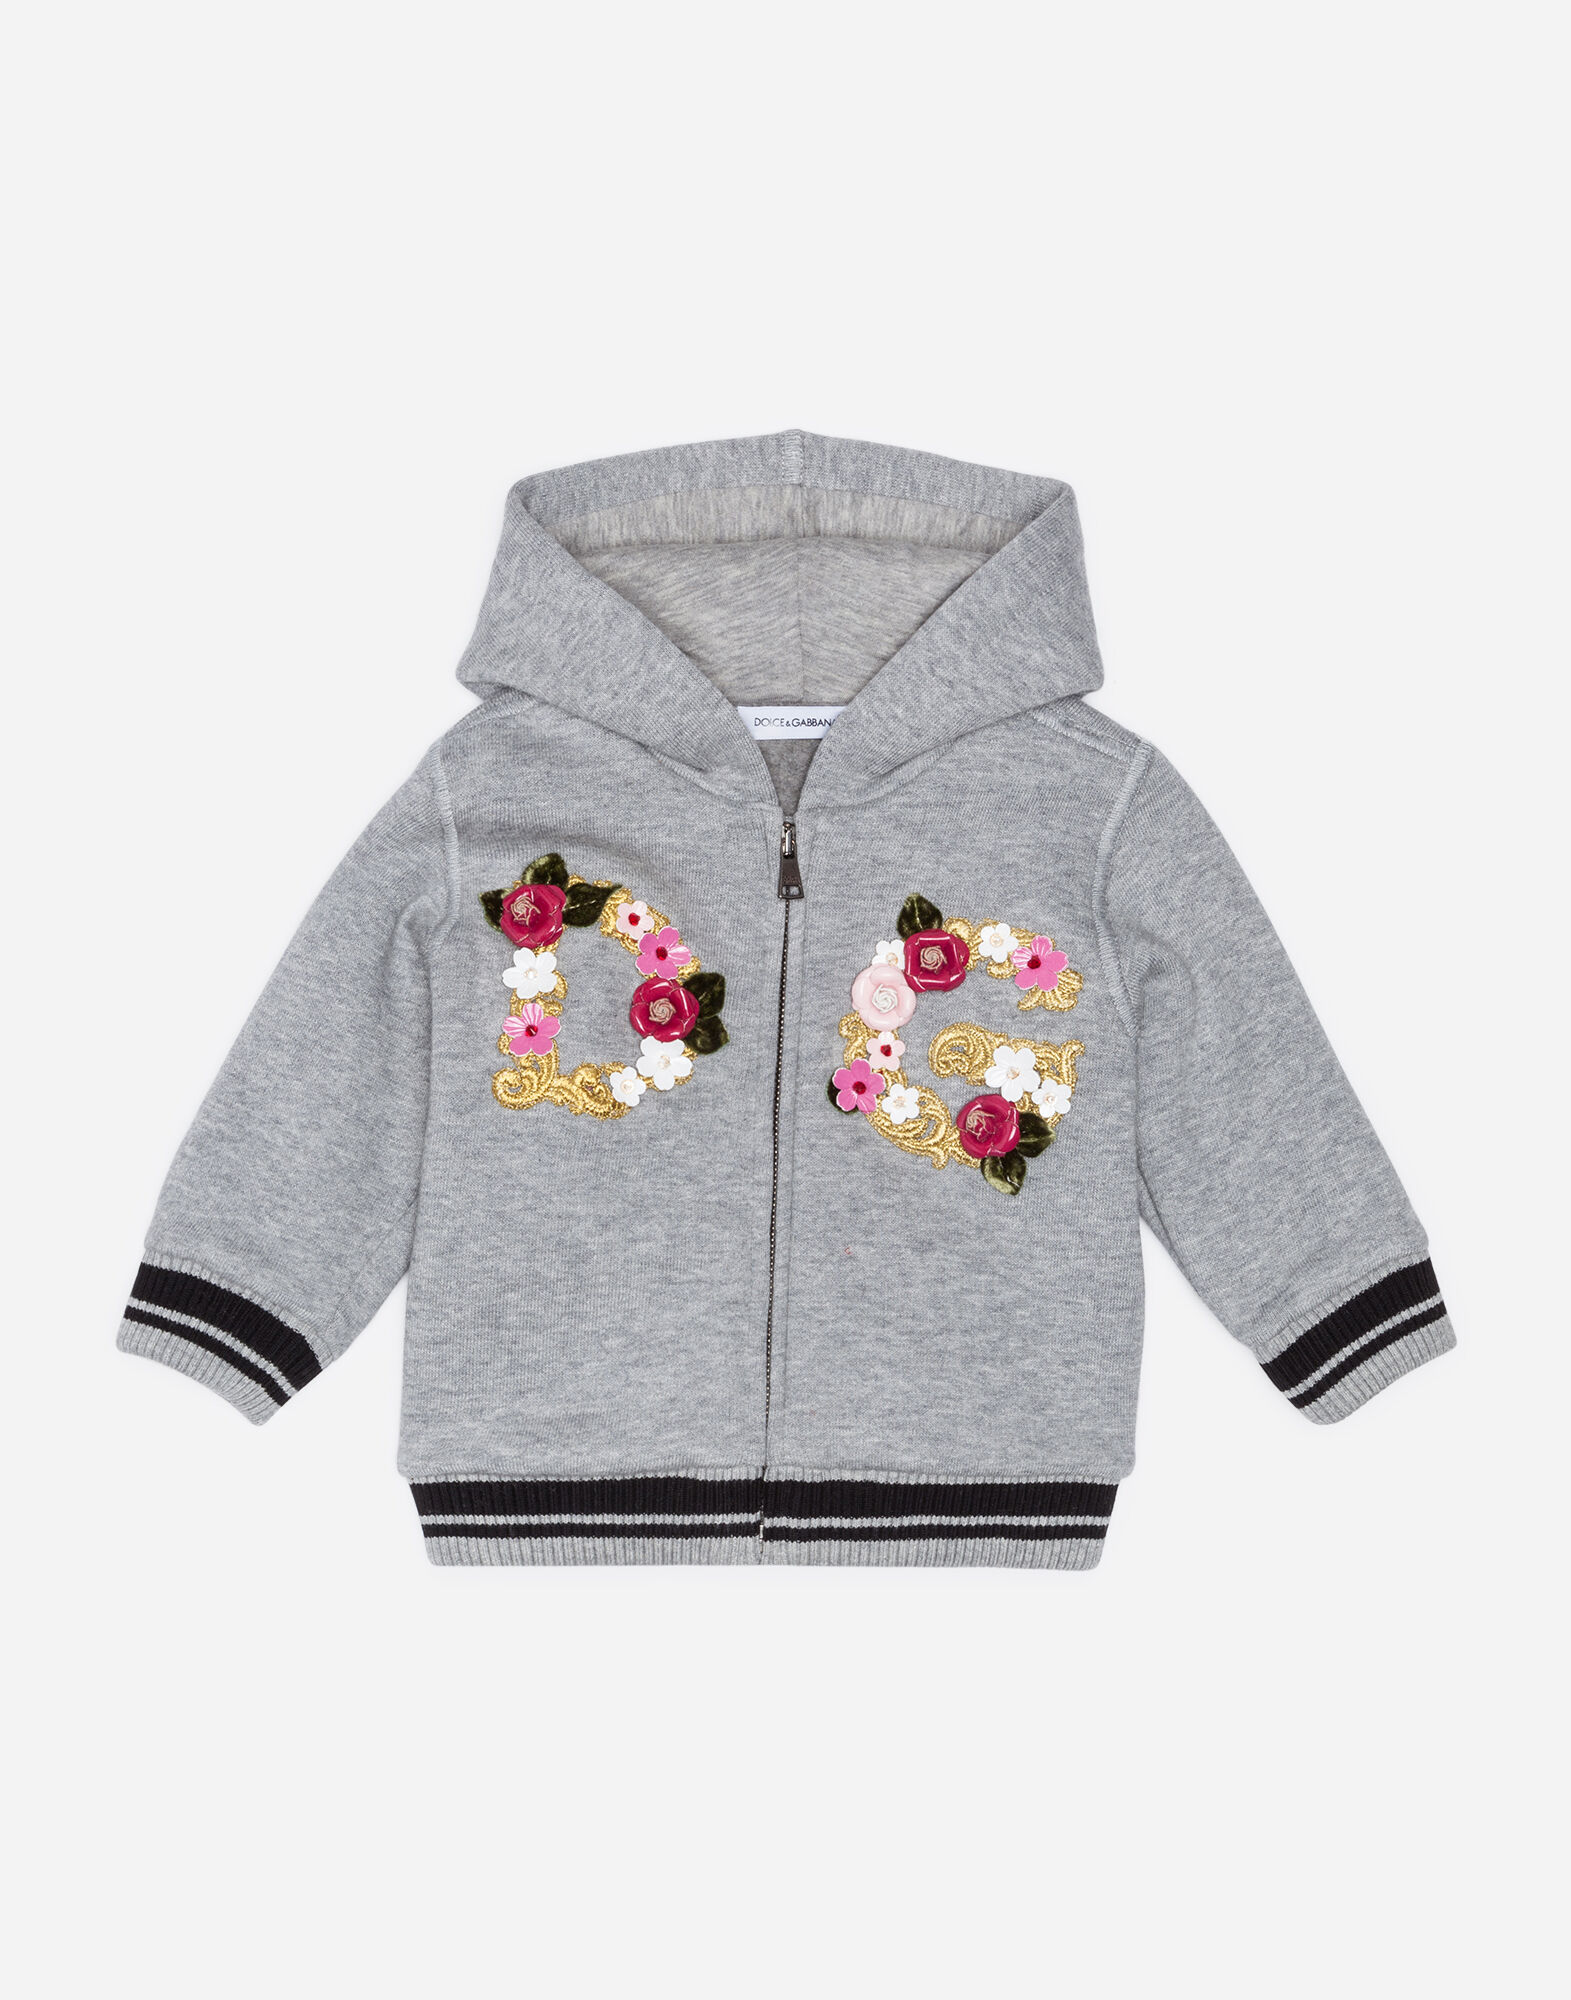 COTTON SWEATSHIRT WITH PATCHES AND APPLIQUÉS